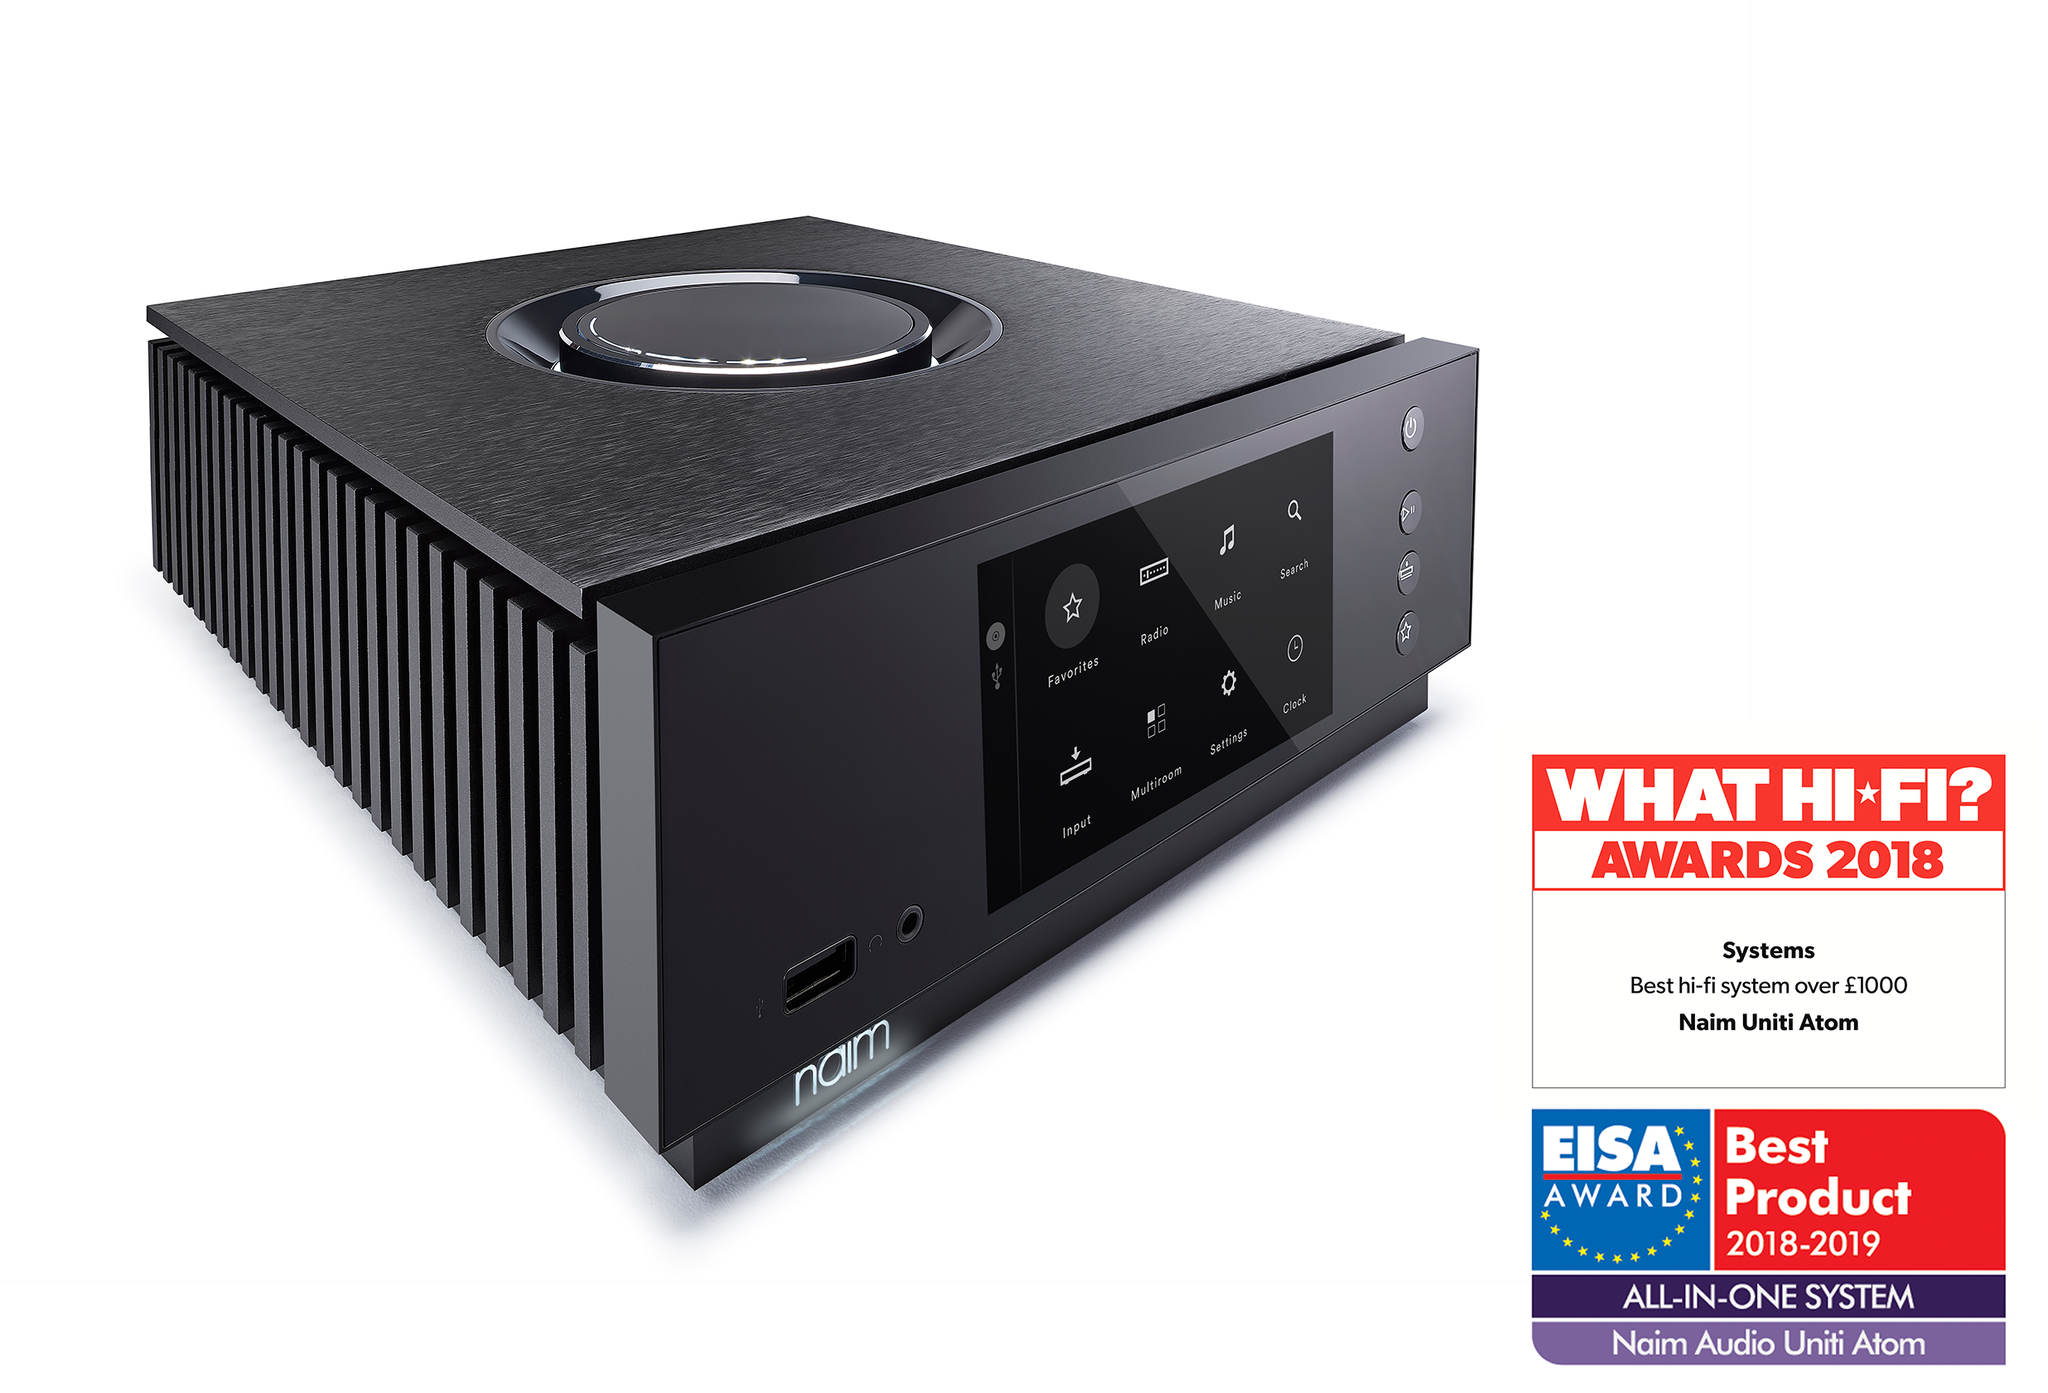 """Delighted to say the Uniti Atom has been crowned """"Best hi-fi system over £1,000"""" in the @whathifi Awards 2018. The Uniti Atom was also awarded """"Best Product"""" in the All-in-One System category of the @eisaawards in August. Is there anything this product can't win? https://t.co/LNWcdCyrUB"""